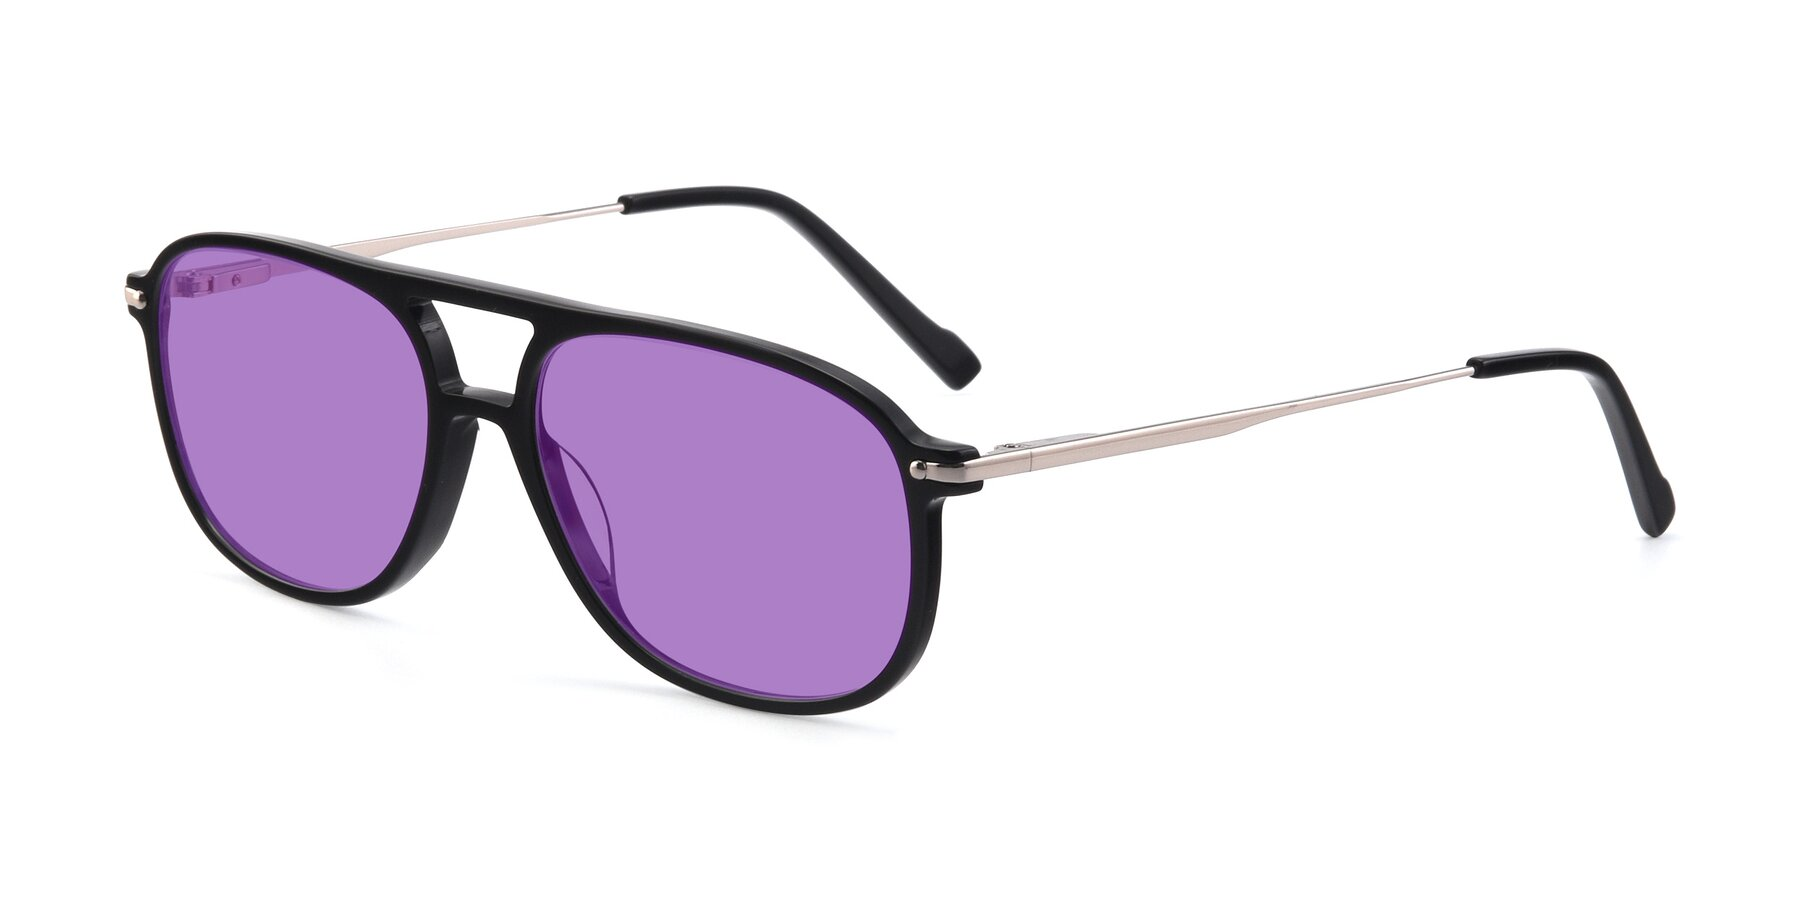 Angle of 17580 in Black with Medium Purple Tinted Lenses